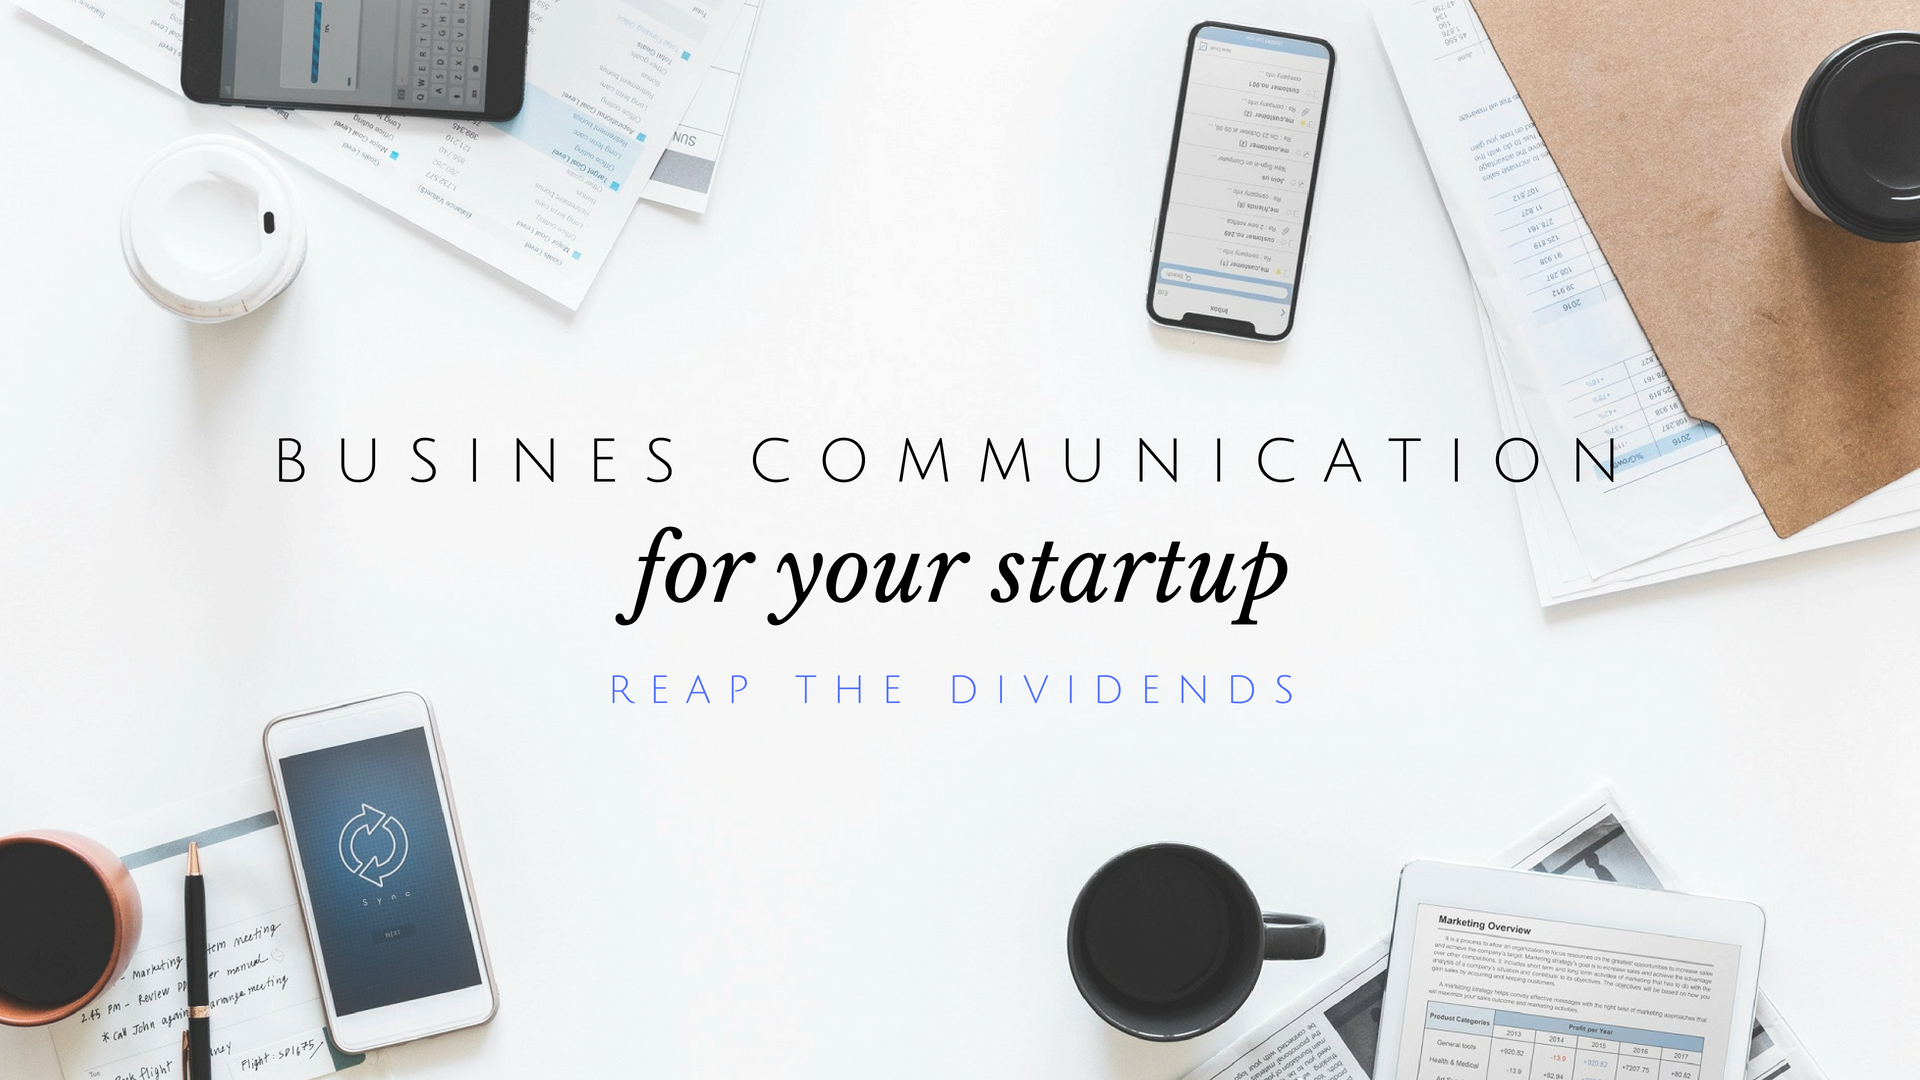 Poster: Business communication for your startup - reap the dividends.